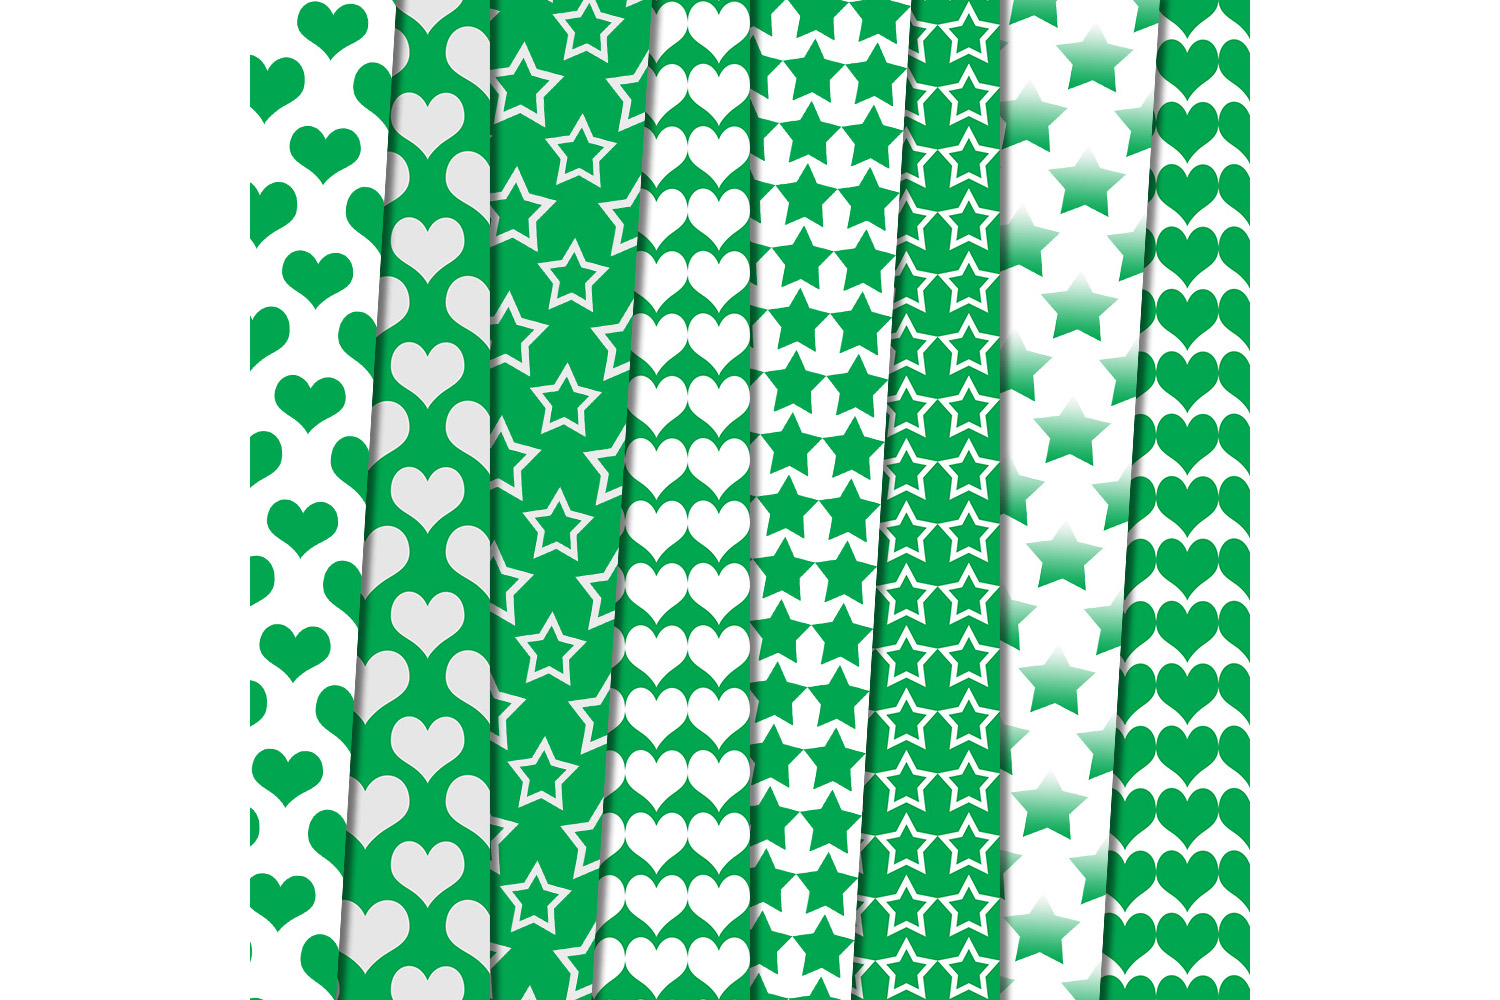 Green heart, stars patterned, green, white, stars, OFF, SALE example image 2